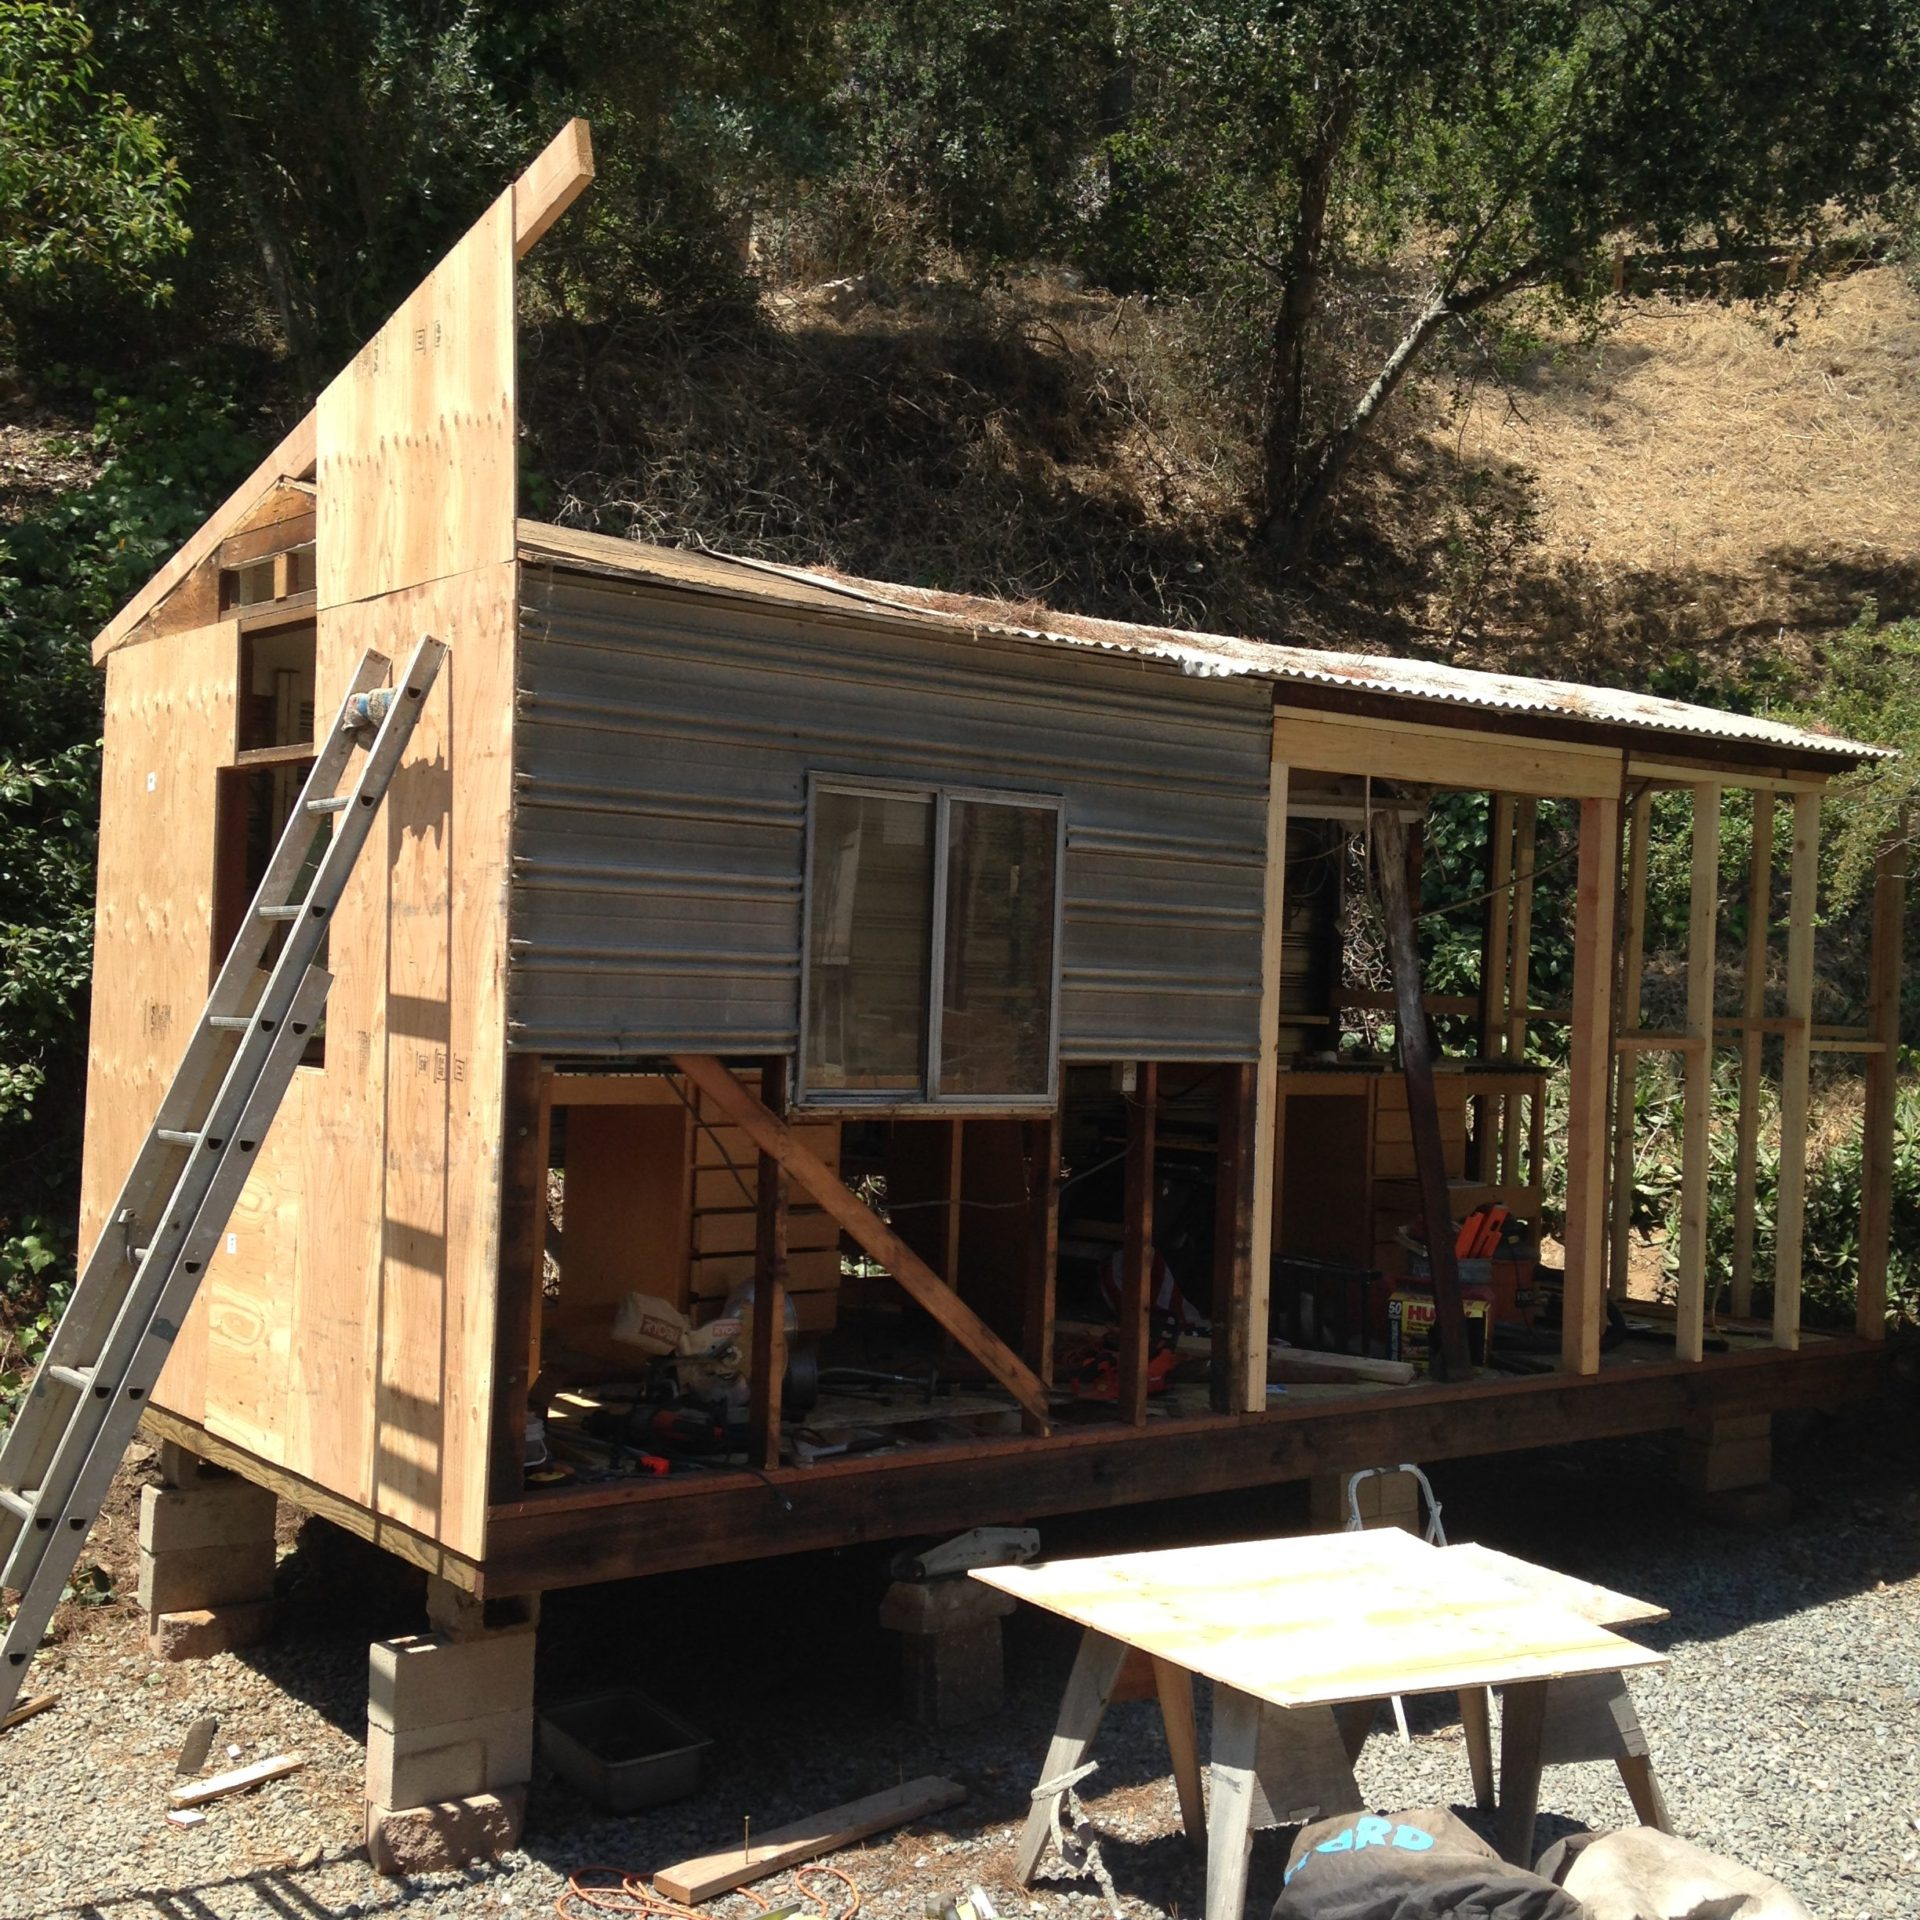 brnadon roth rebuilds an old shed into part of his workshop